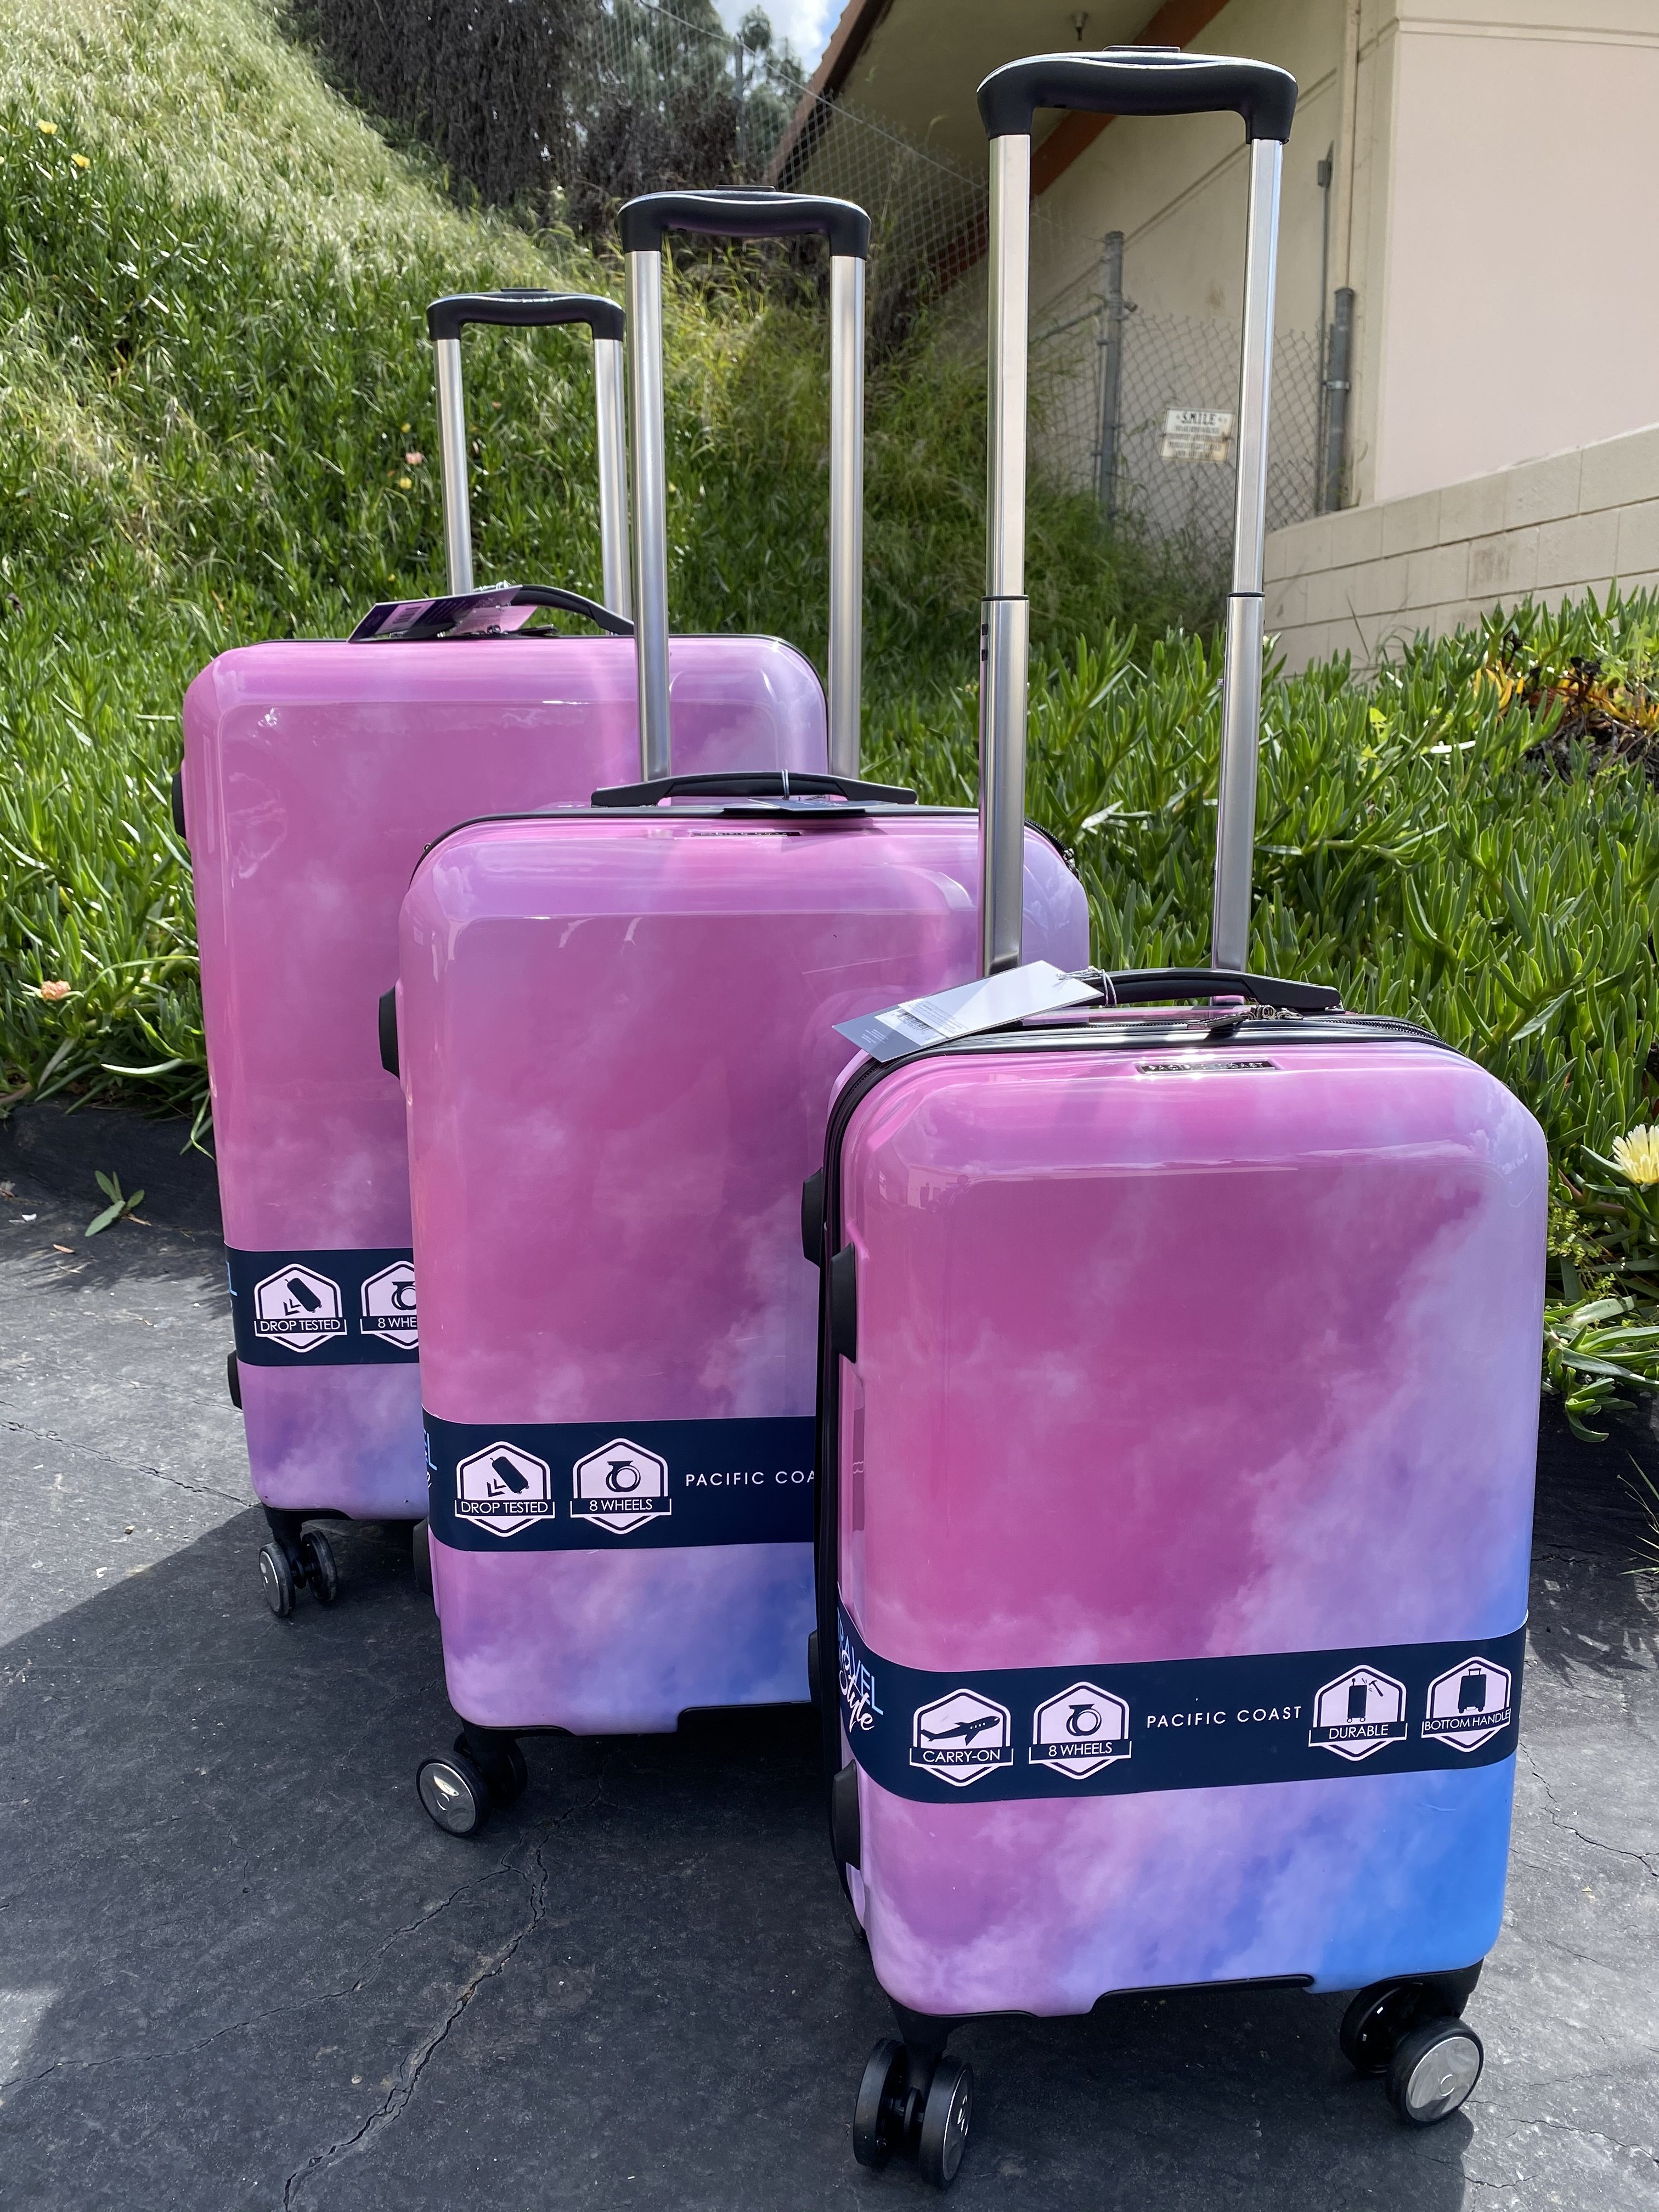 Pacific Coast 3-Piece Polycarbonate Pink Cloud Hardside Luggage Set